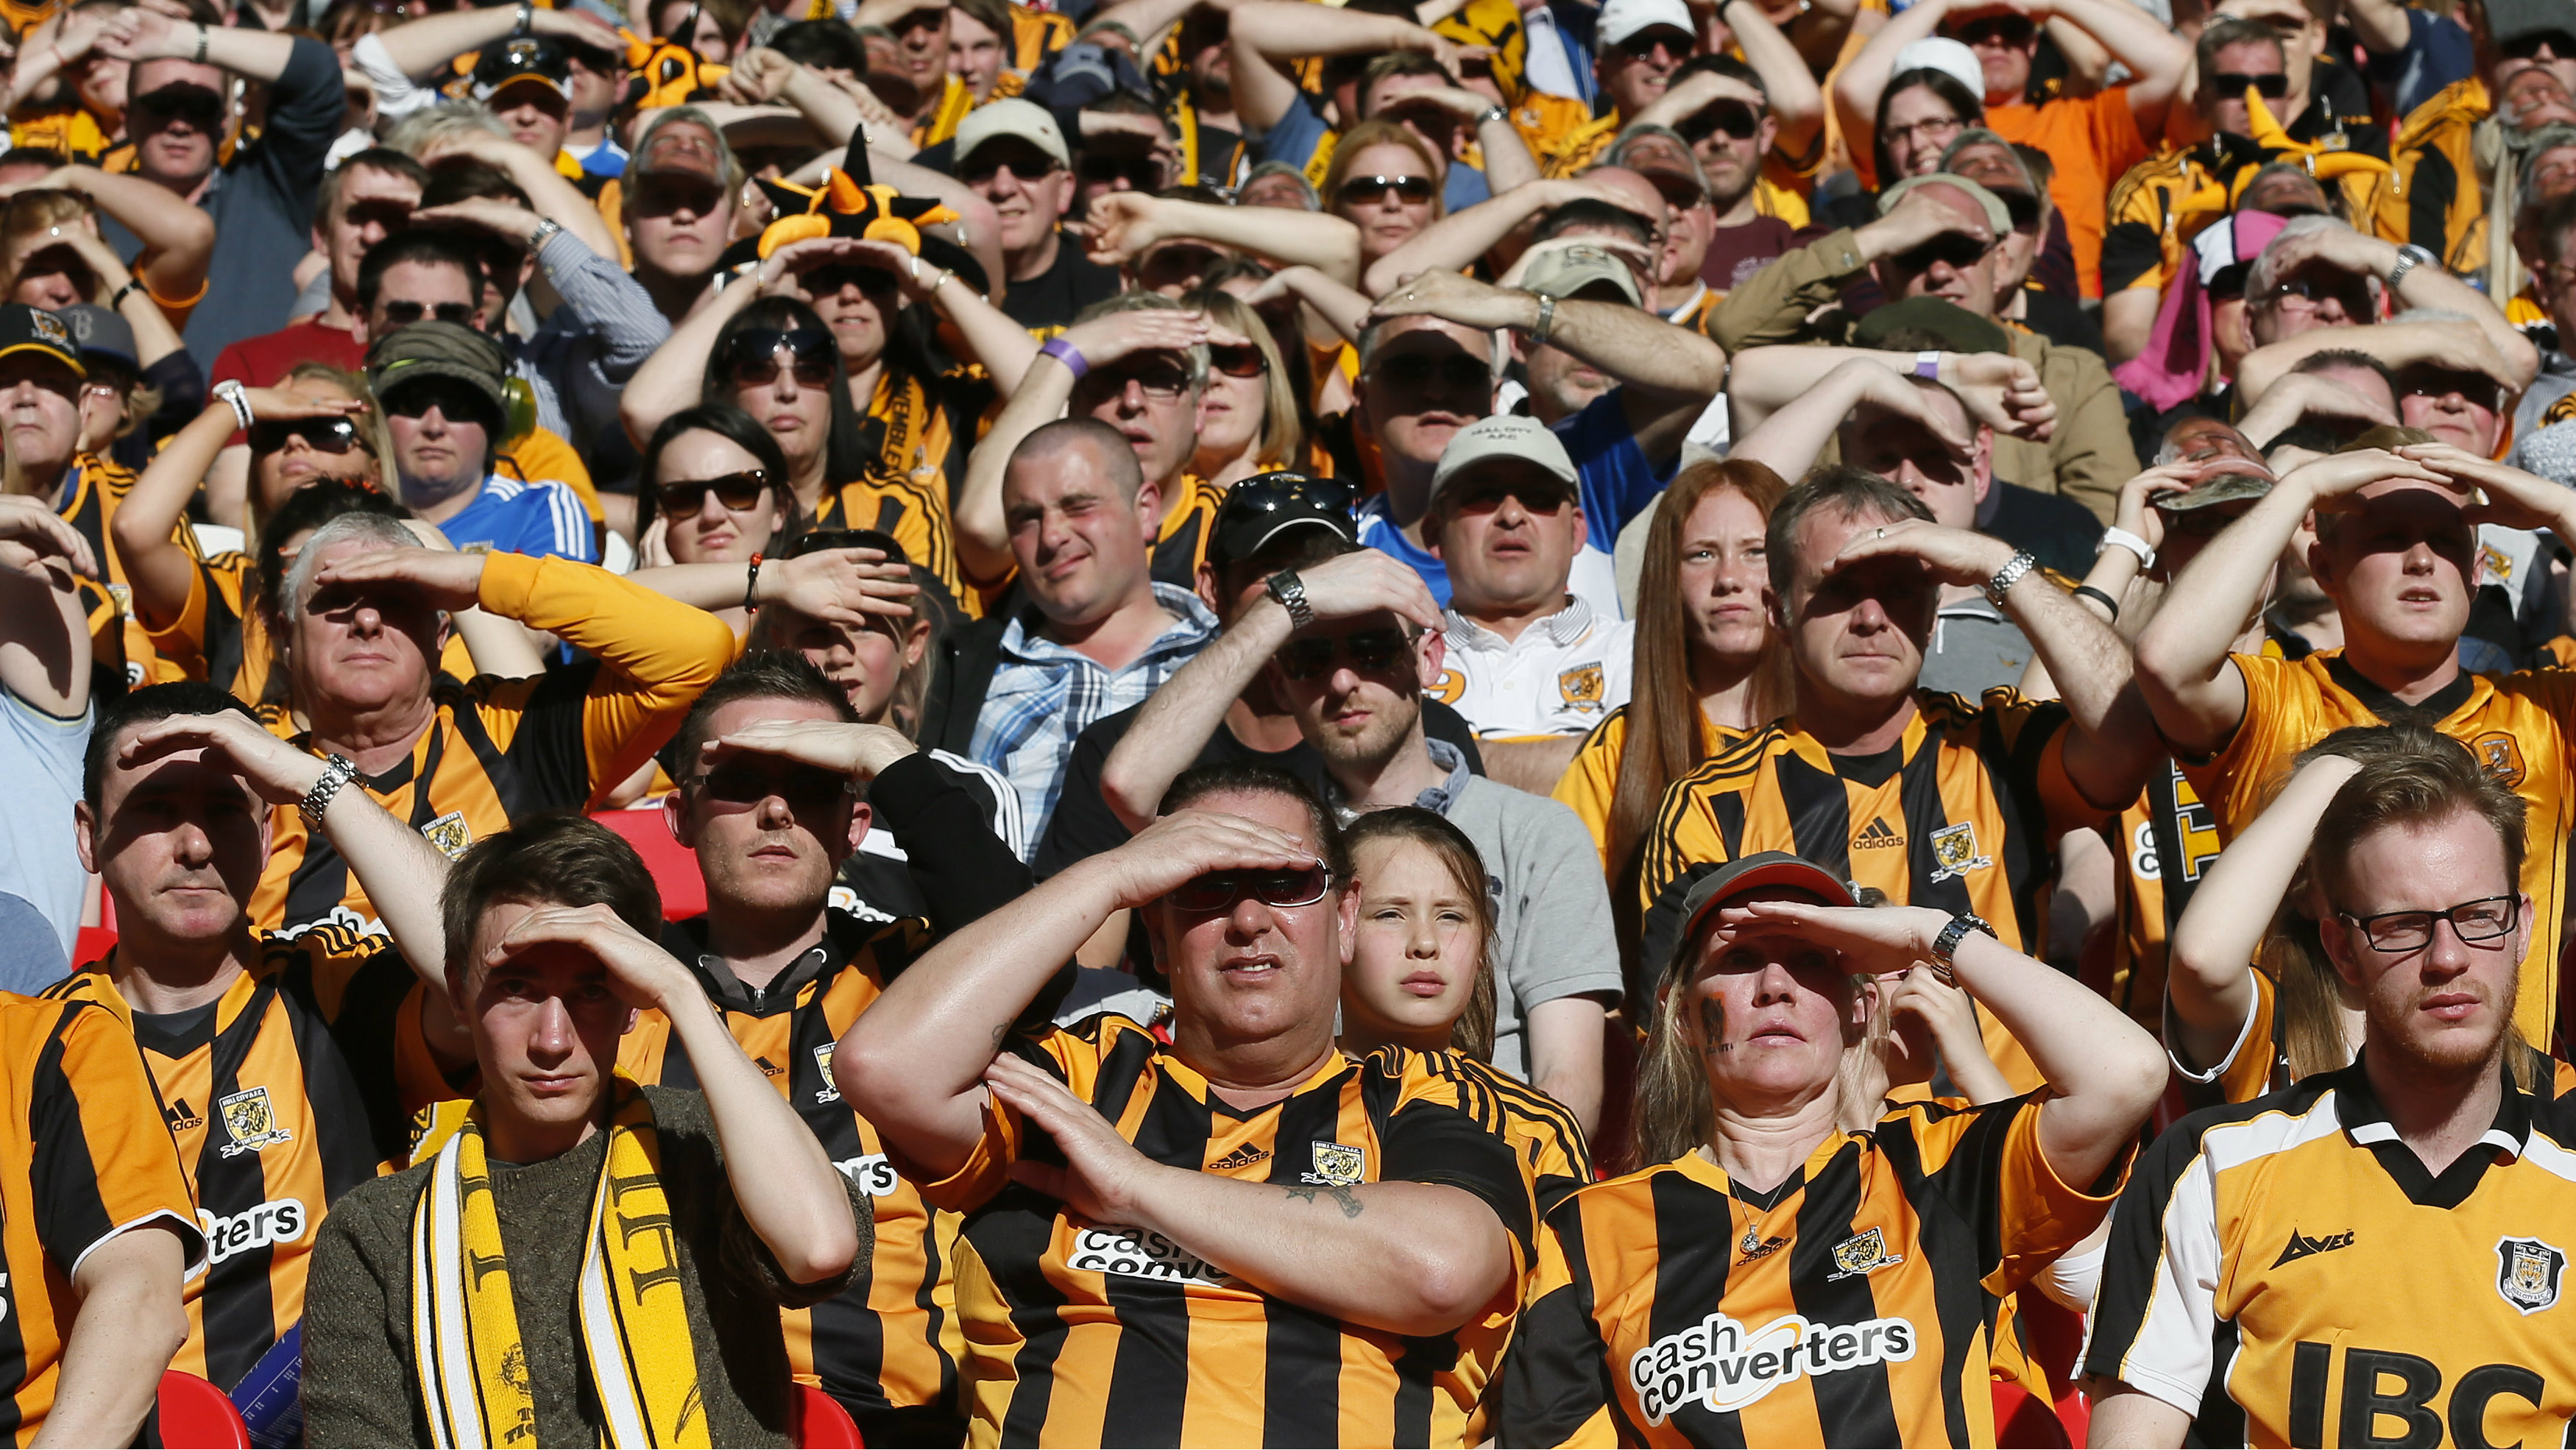 Hull City's fans watch their English FA Cup semi-final soccer match against Sheffield United at Wembley Stadium during a sunny day in London April 13, 2014.